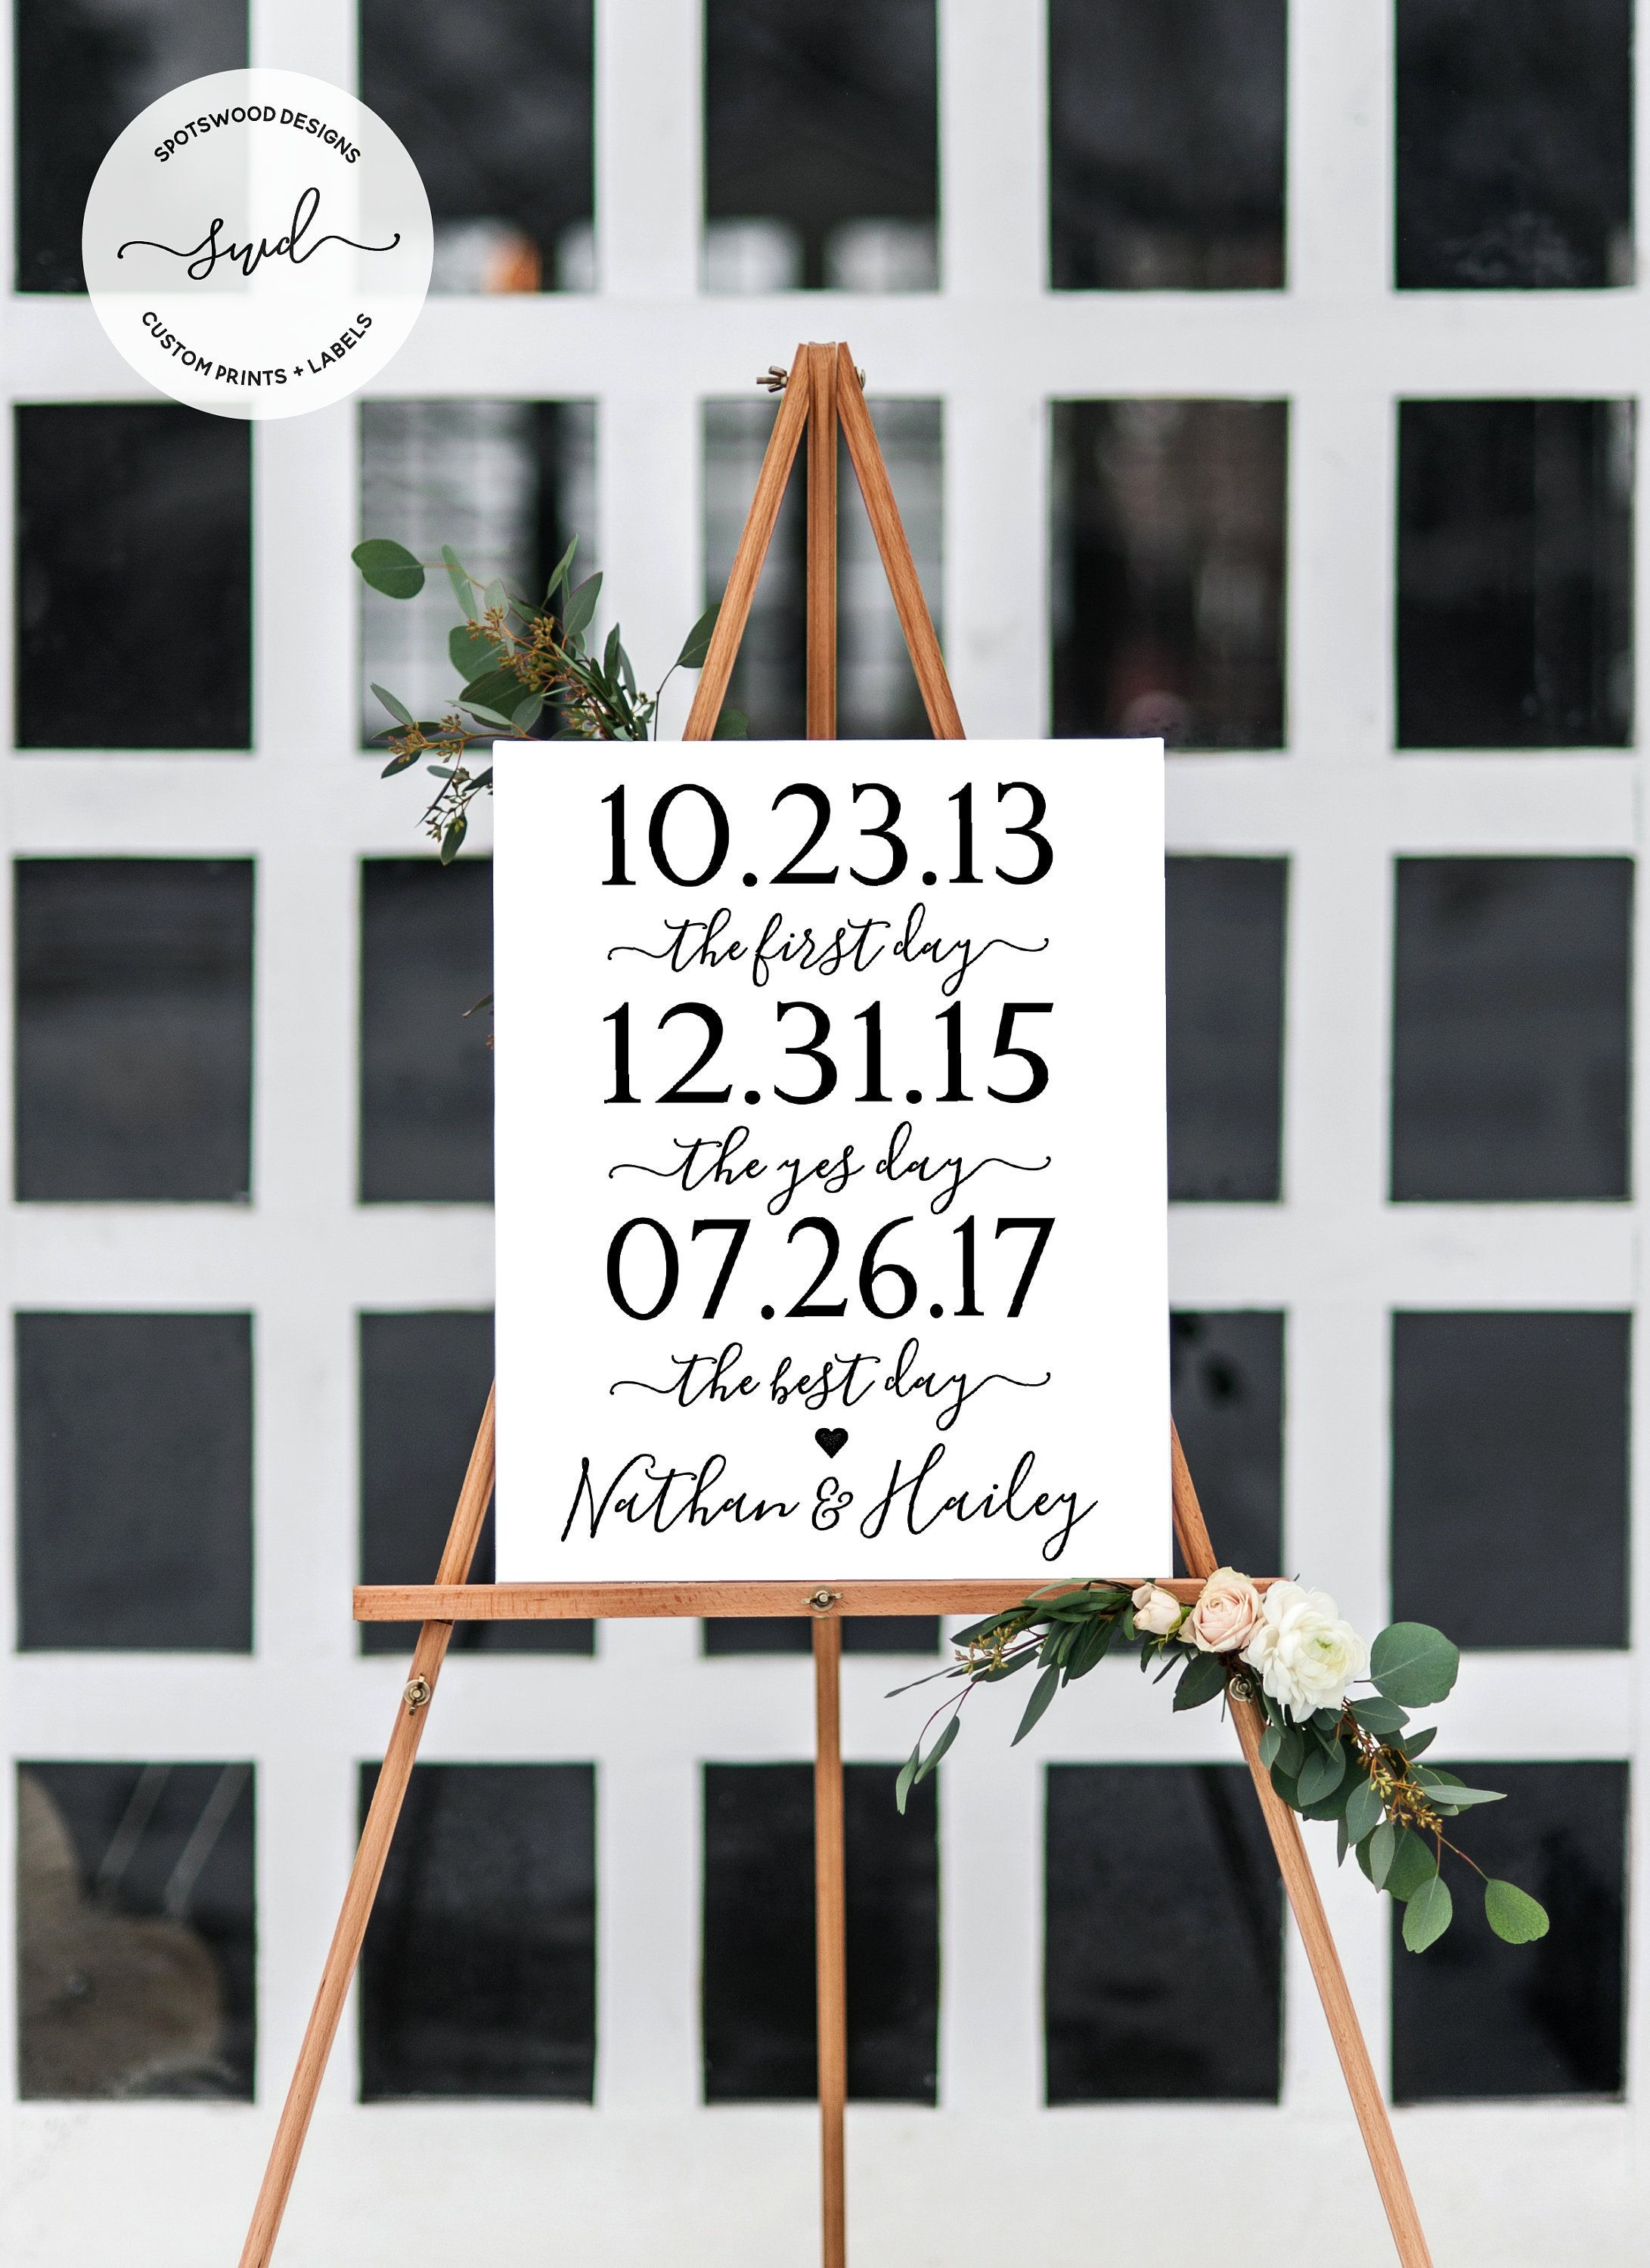 Christian wedding decoration designs  First Day Yes Day Best Day Custom Printable Our Love Story